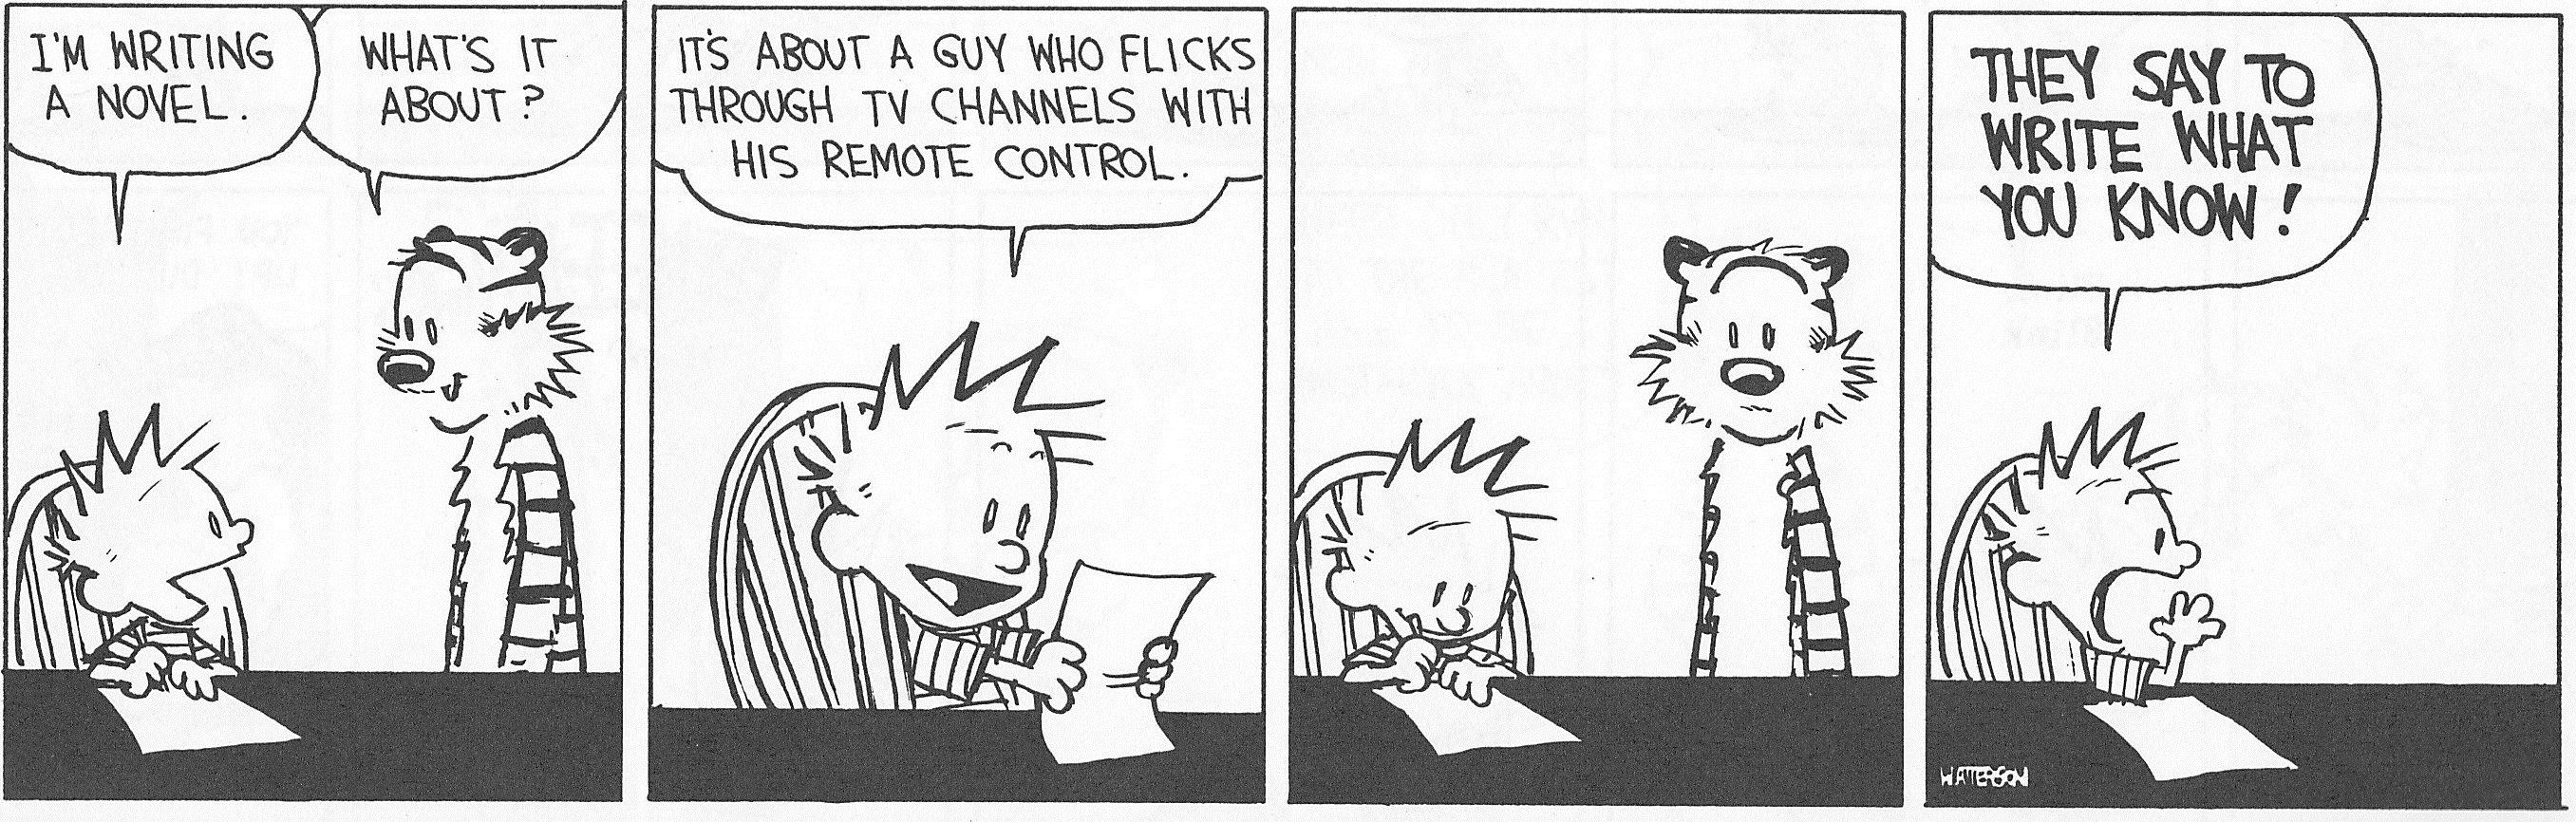 Image result for calvin and hobbes writing novel